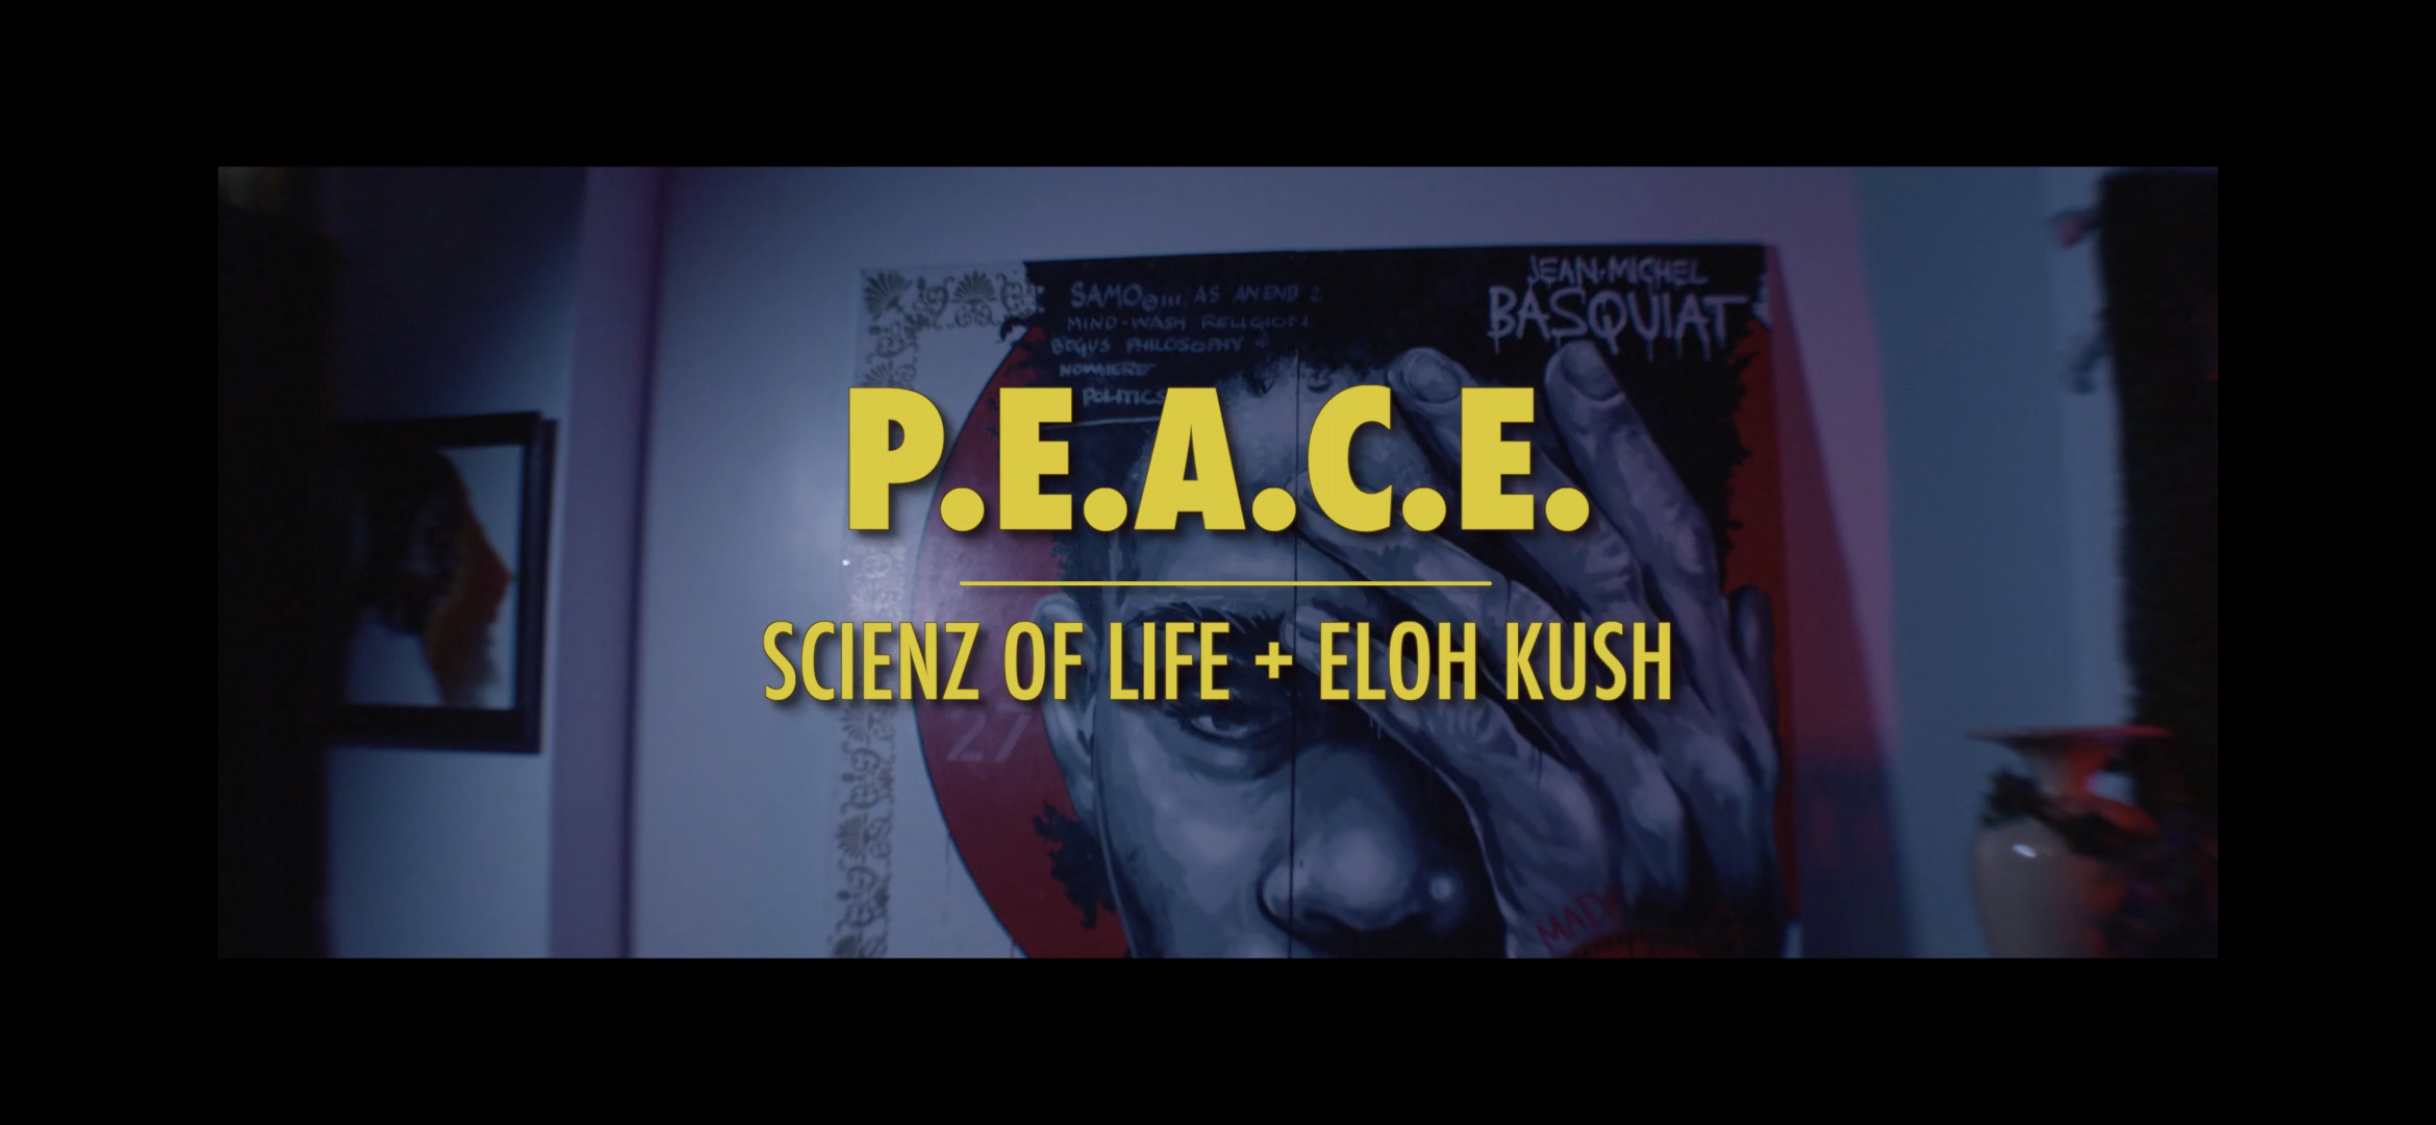 Scienz of Life & Eloh Kush - P.E.A.C.E (VIDEO)